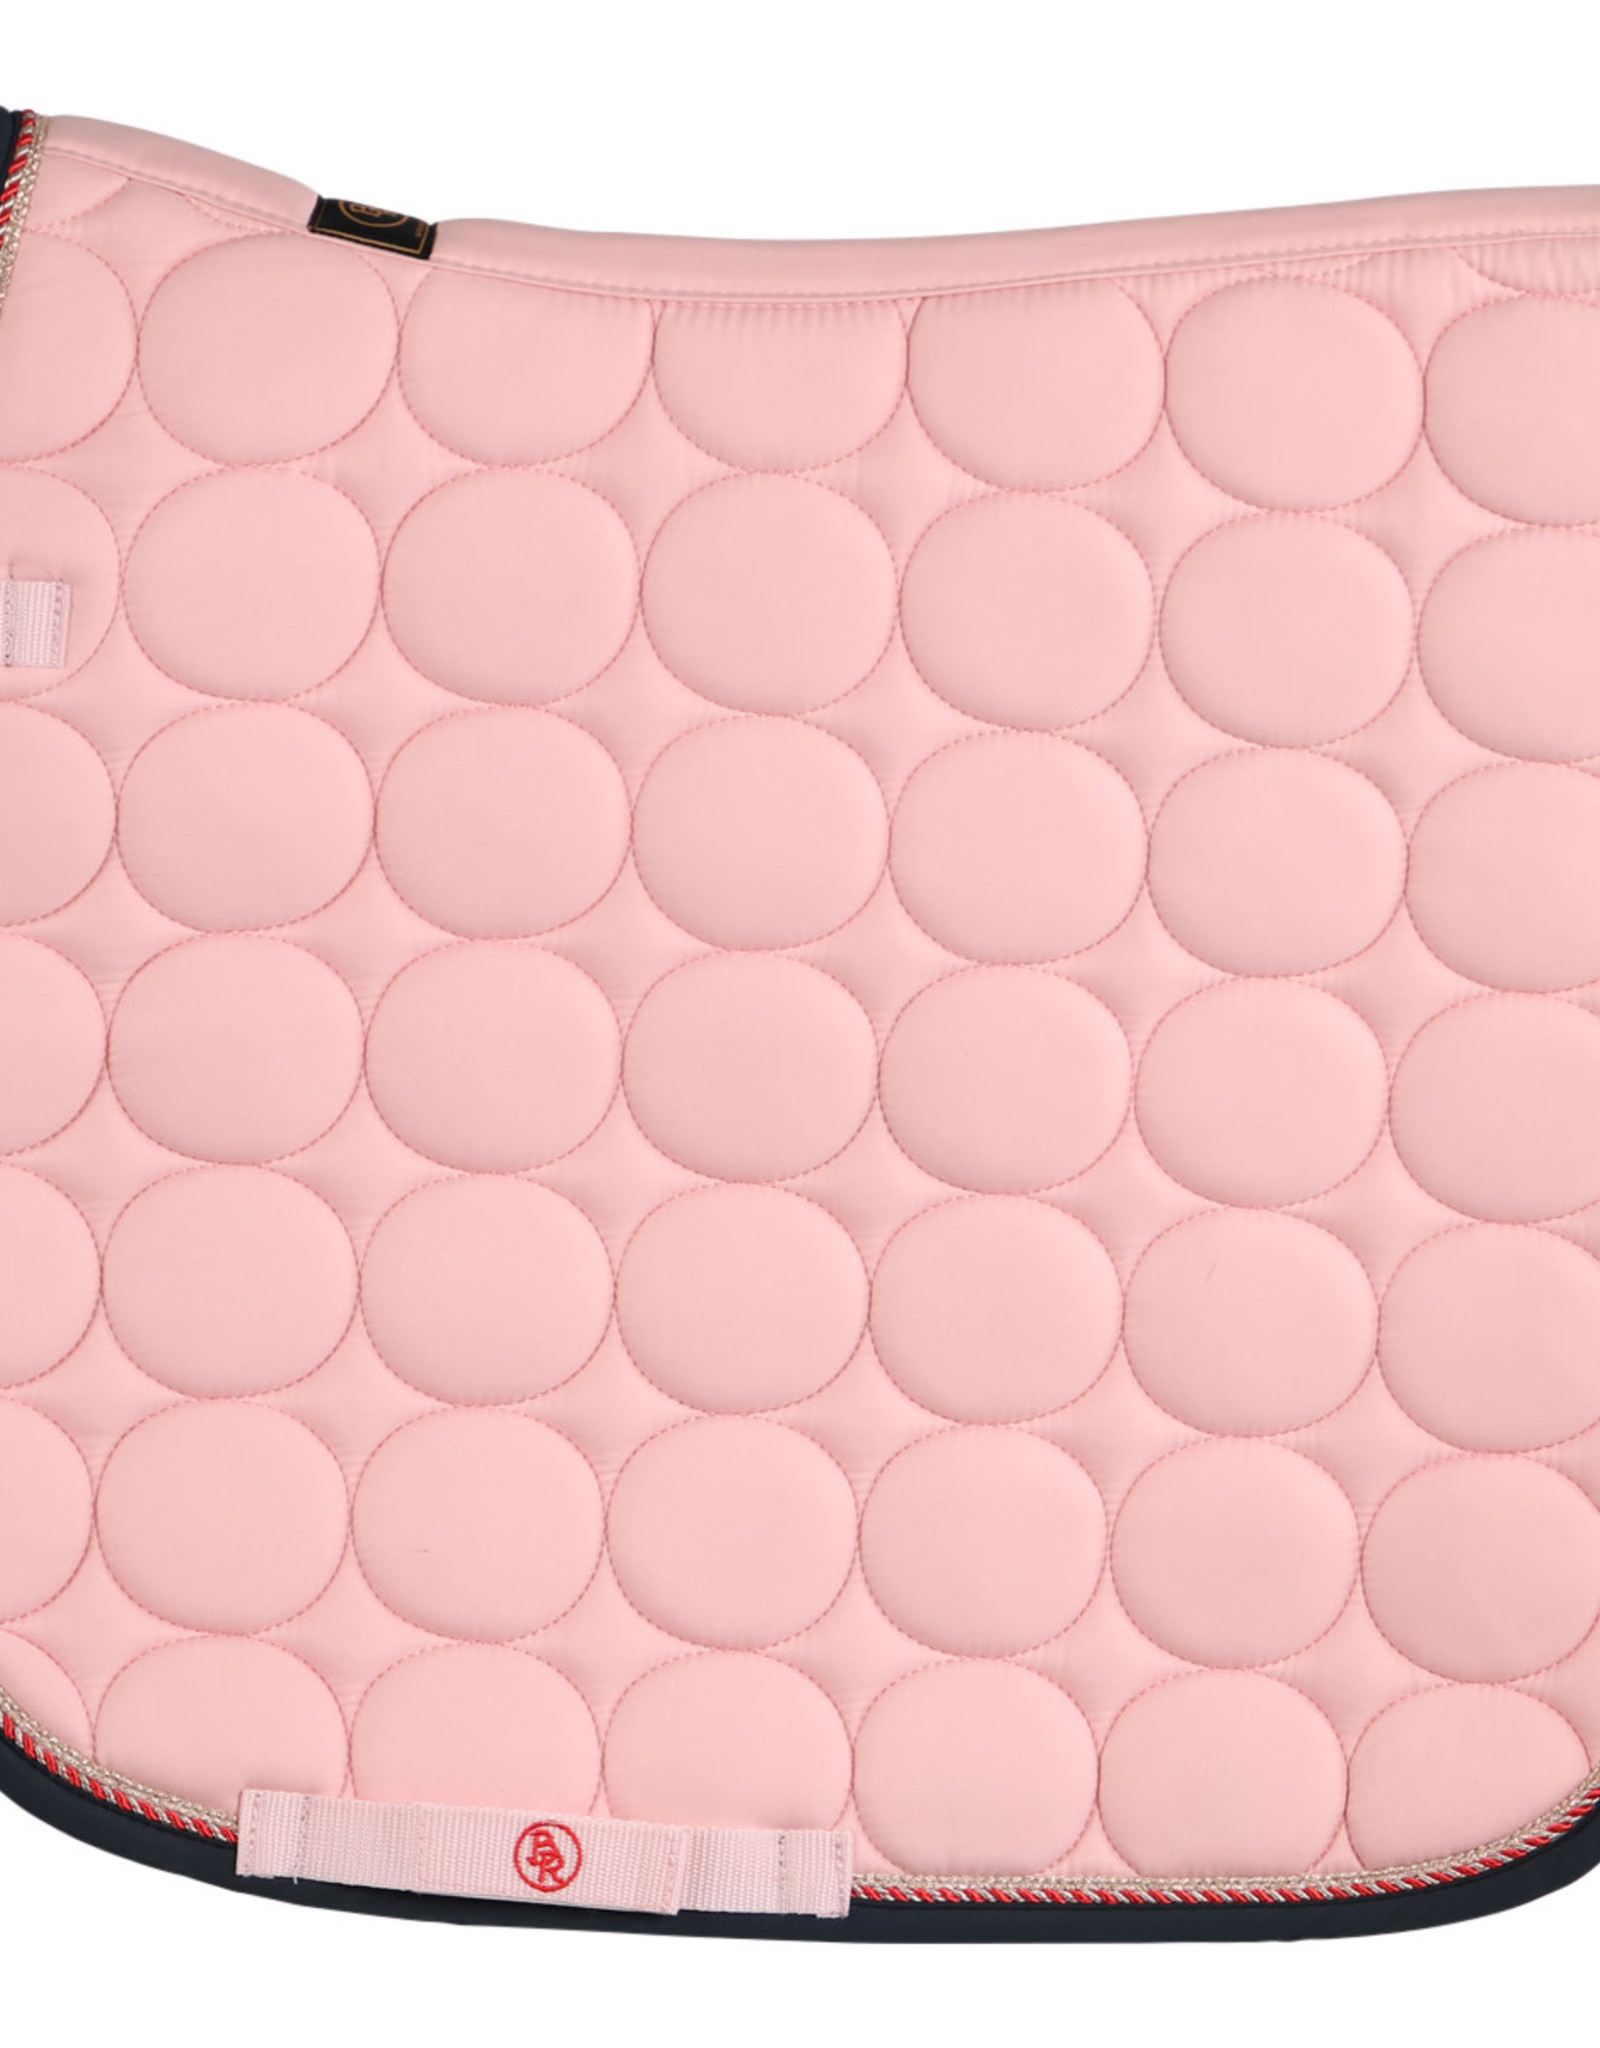 BR 4-EH RORY DRESSAGE PAD